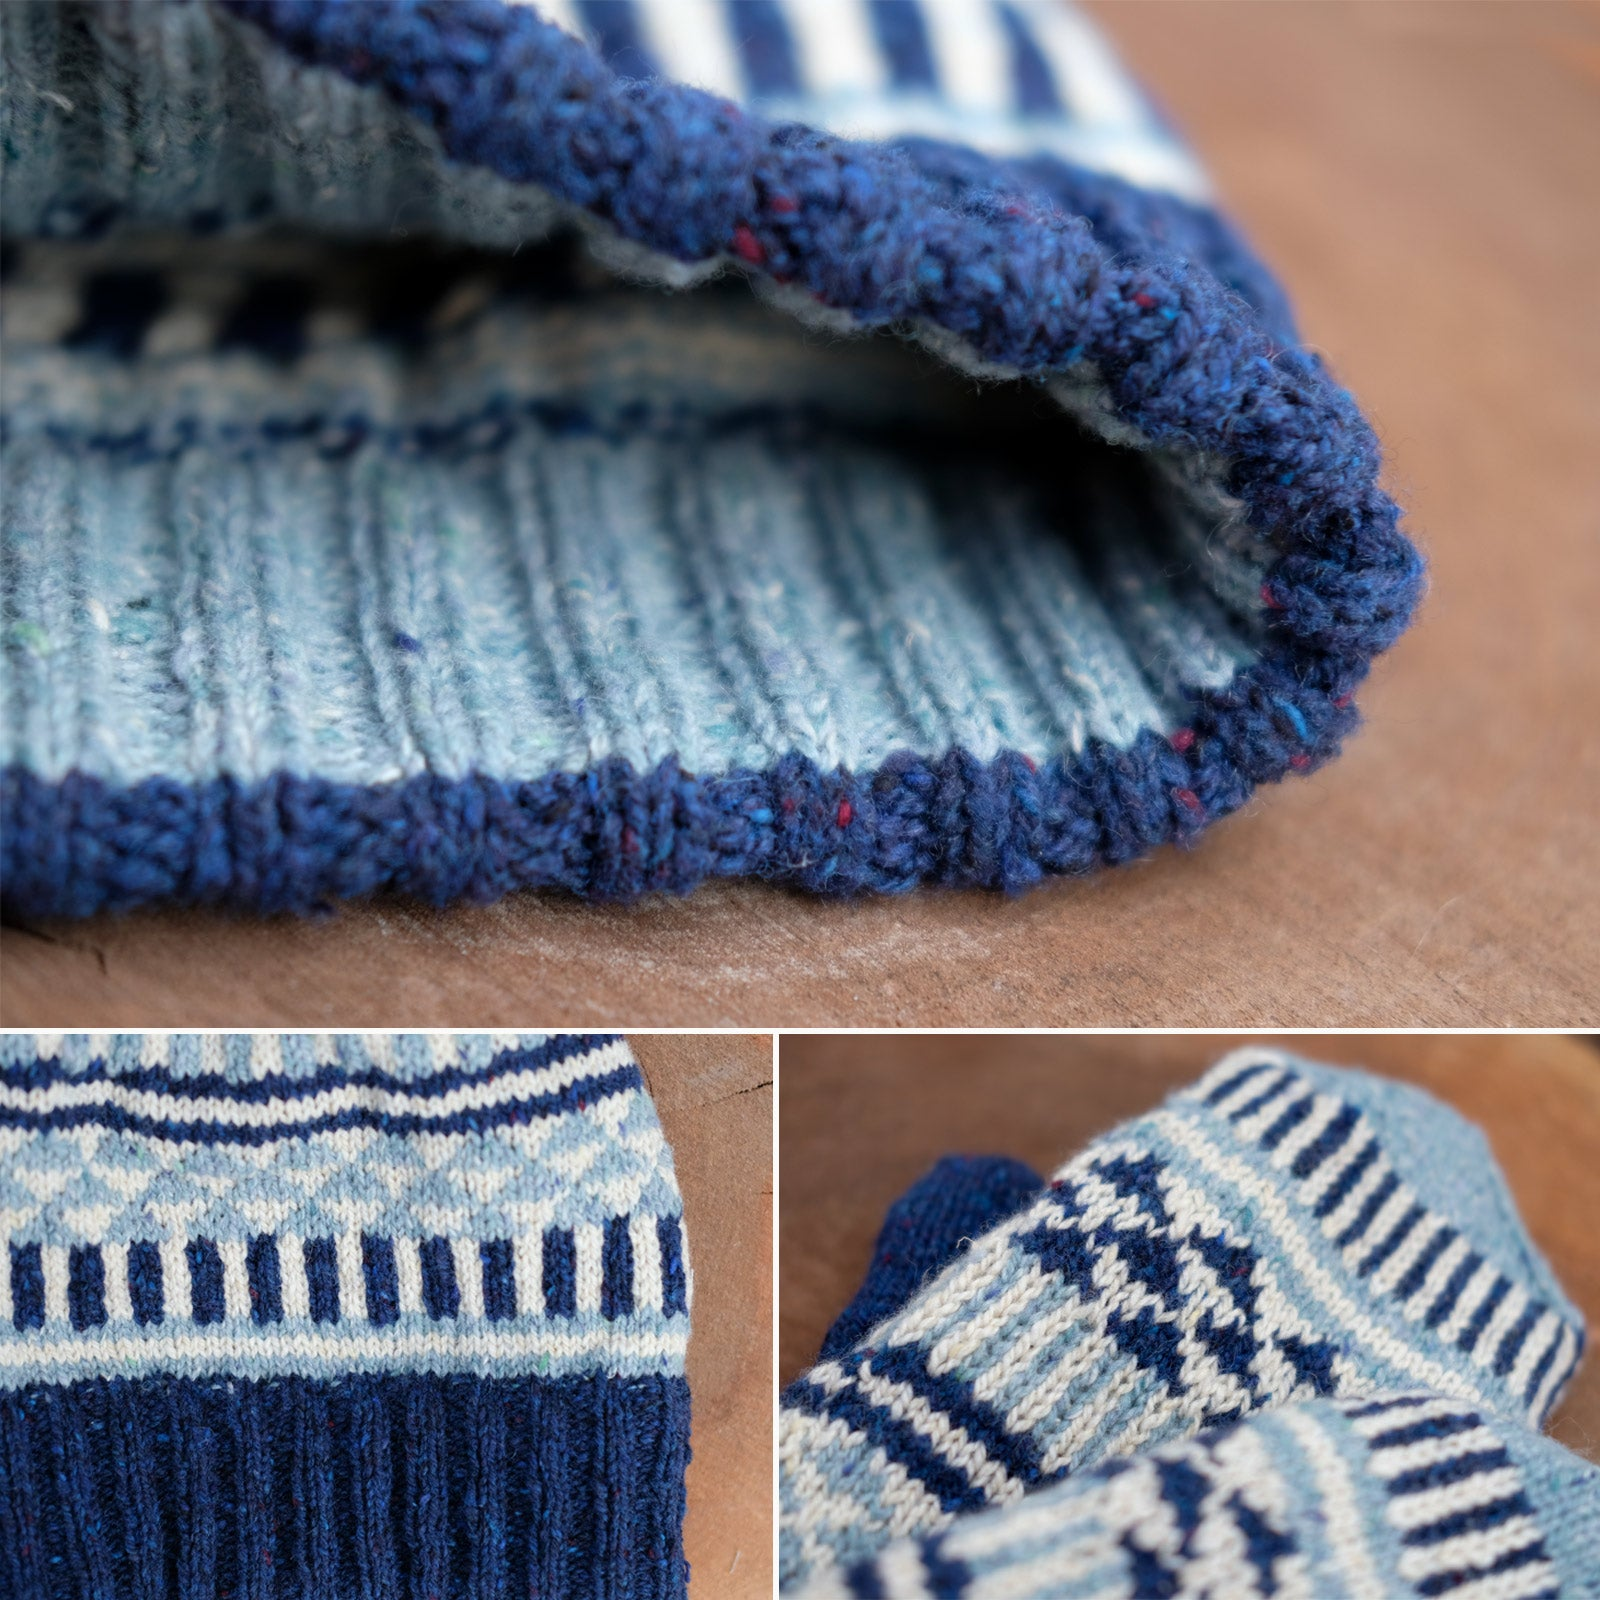 Detail shots of the Candy Darling hat and mitten set